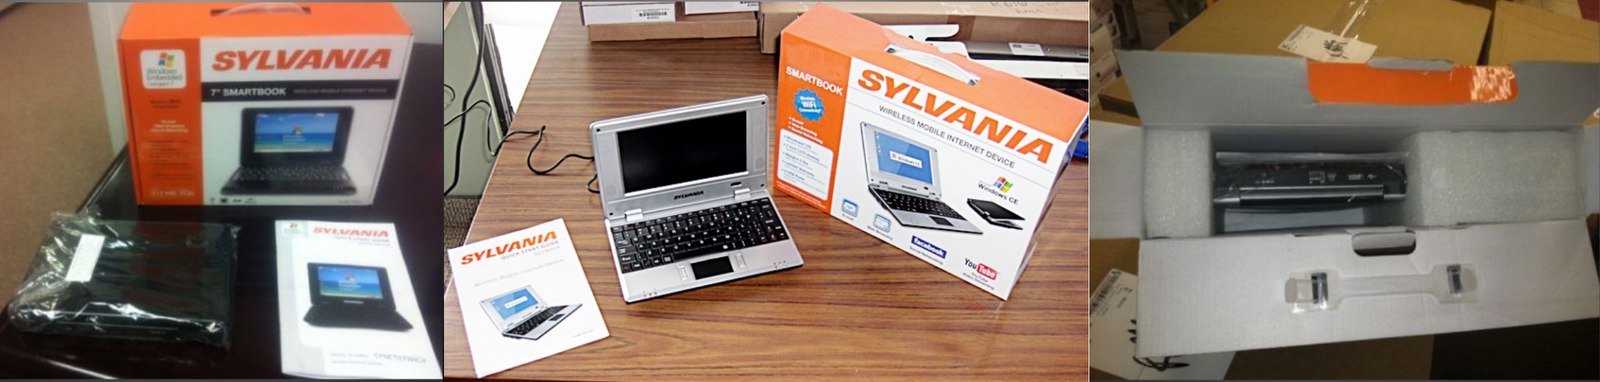 synet07526 r 7 wireless netbook red syneta7 7 wireless android netbook